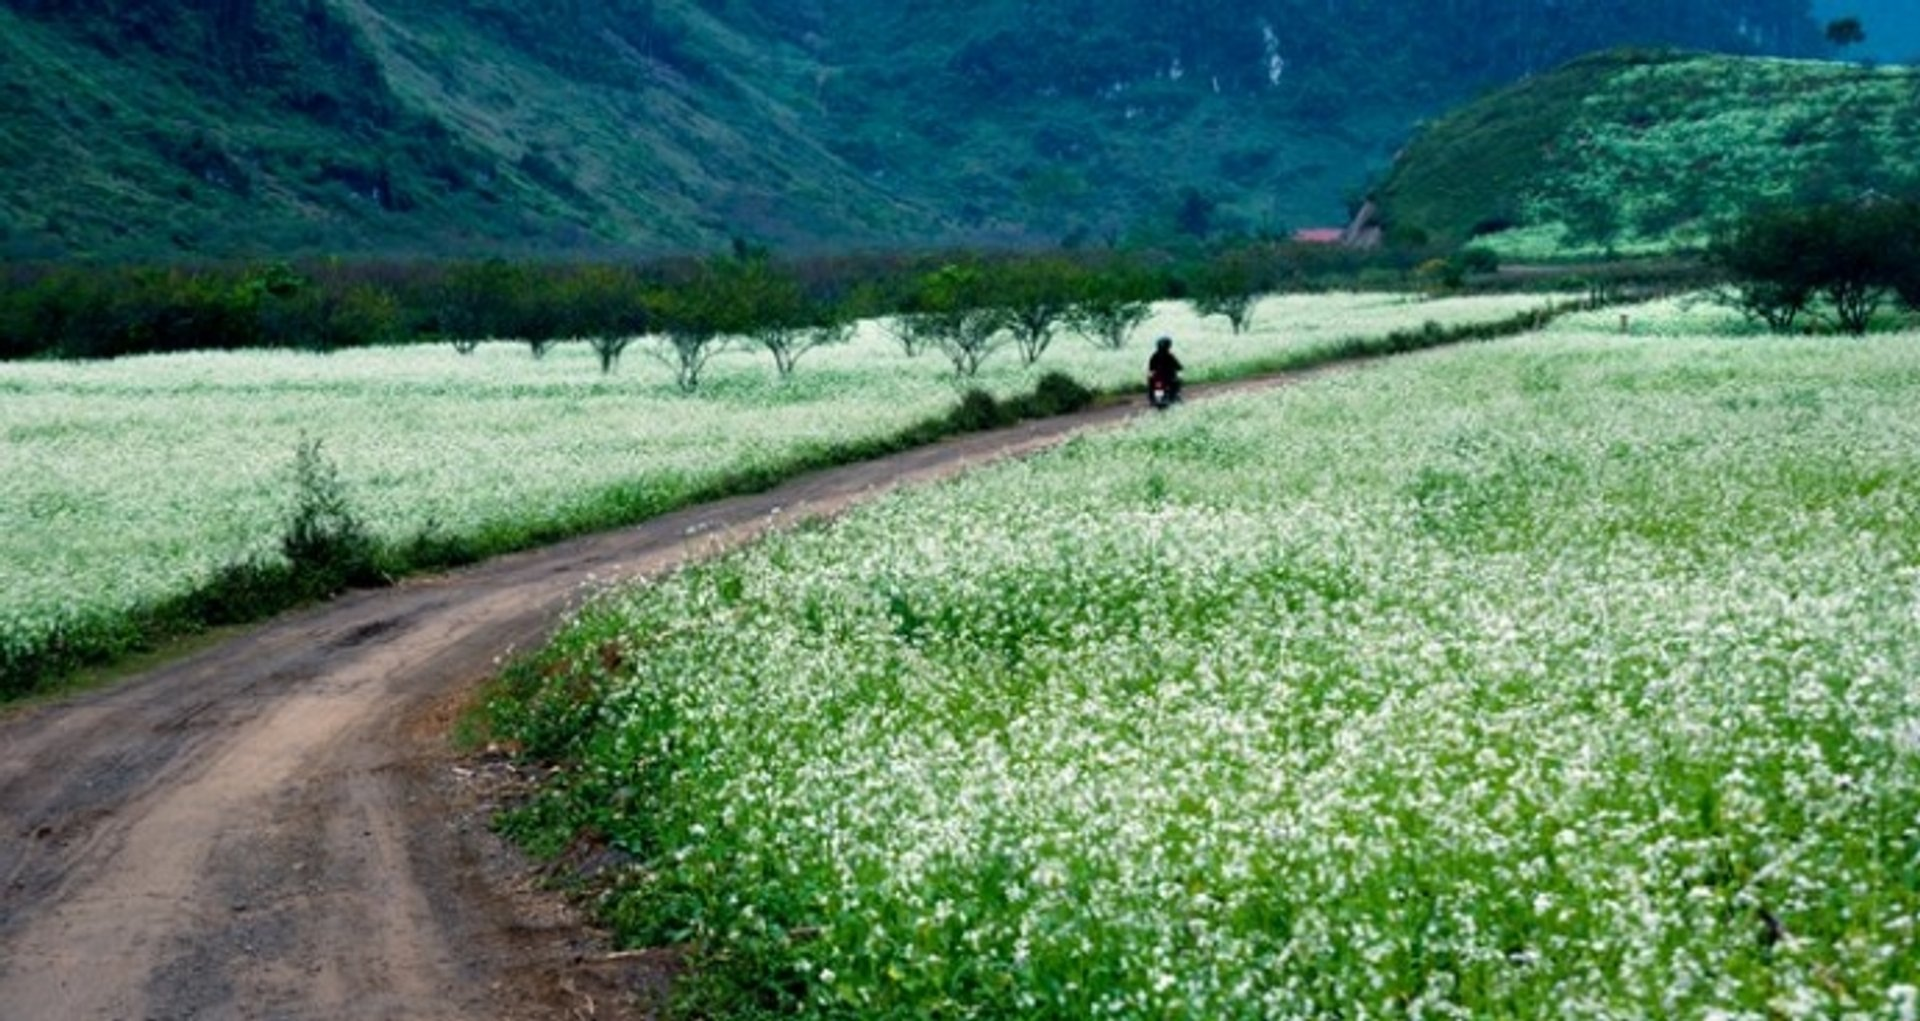 Cauliflower Blooming Season in Vietnam 2020 - Best Time